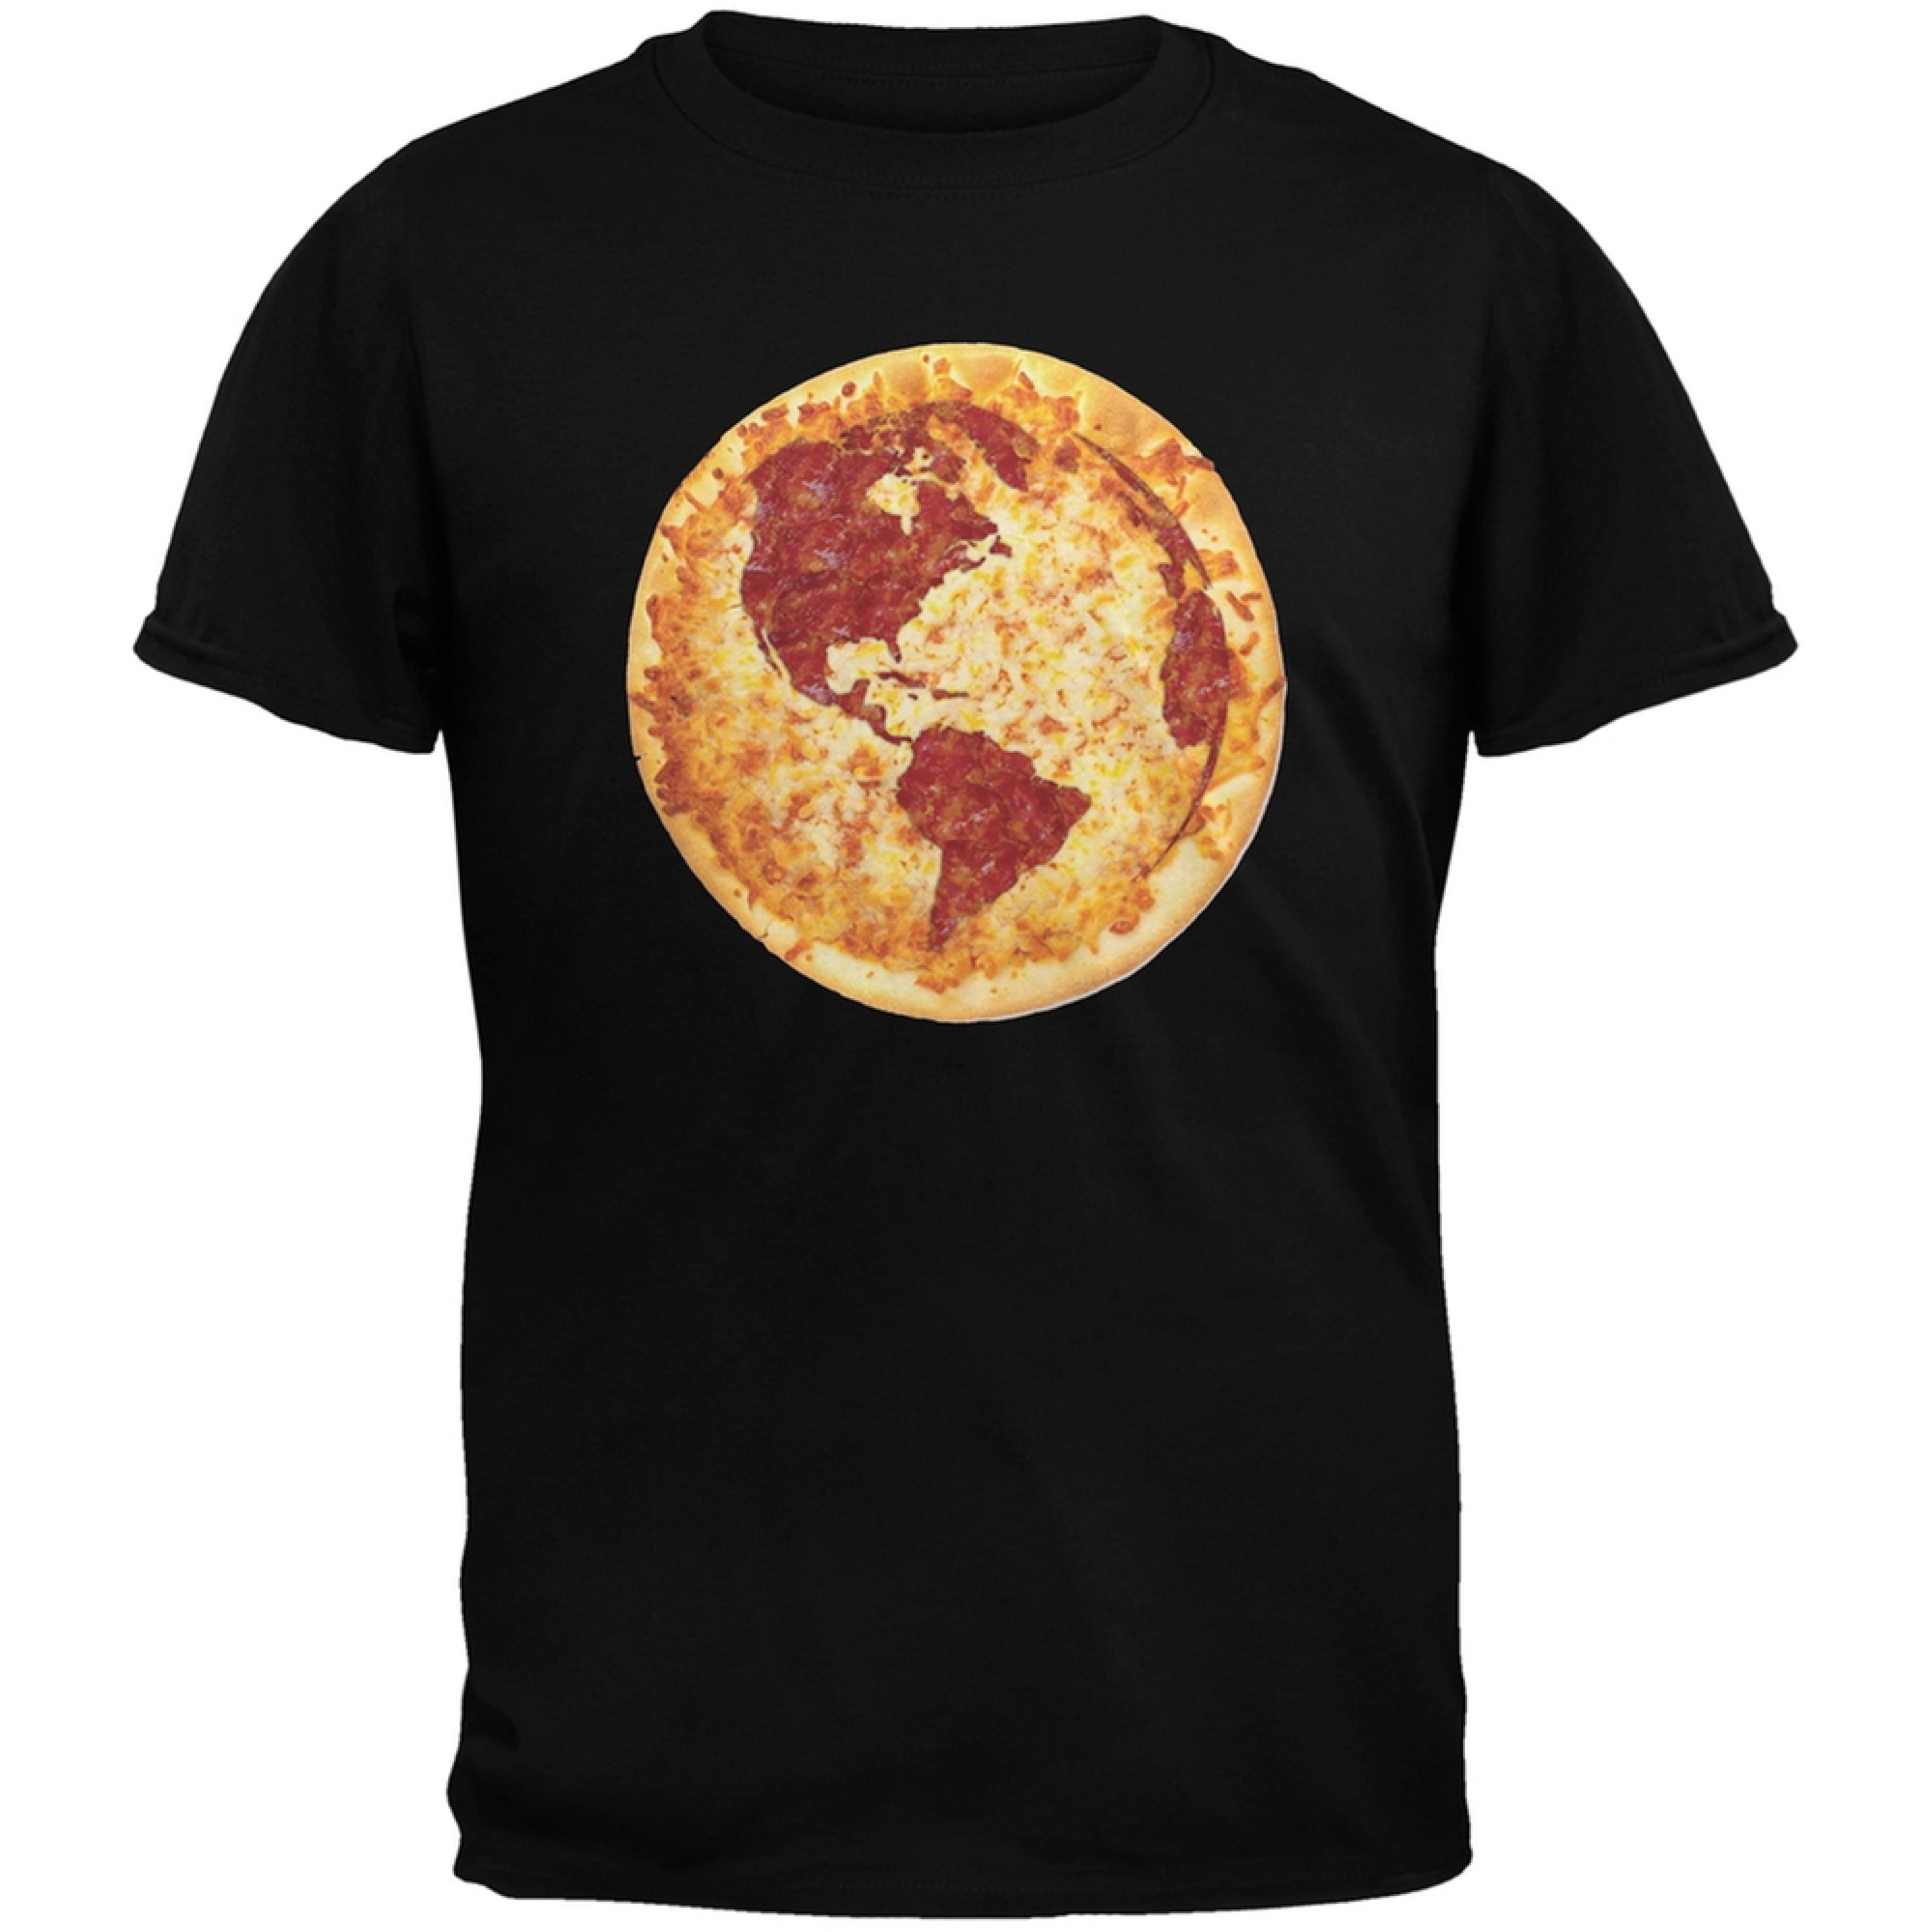 Pizza Earth Black Youth T-Shirt